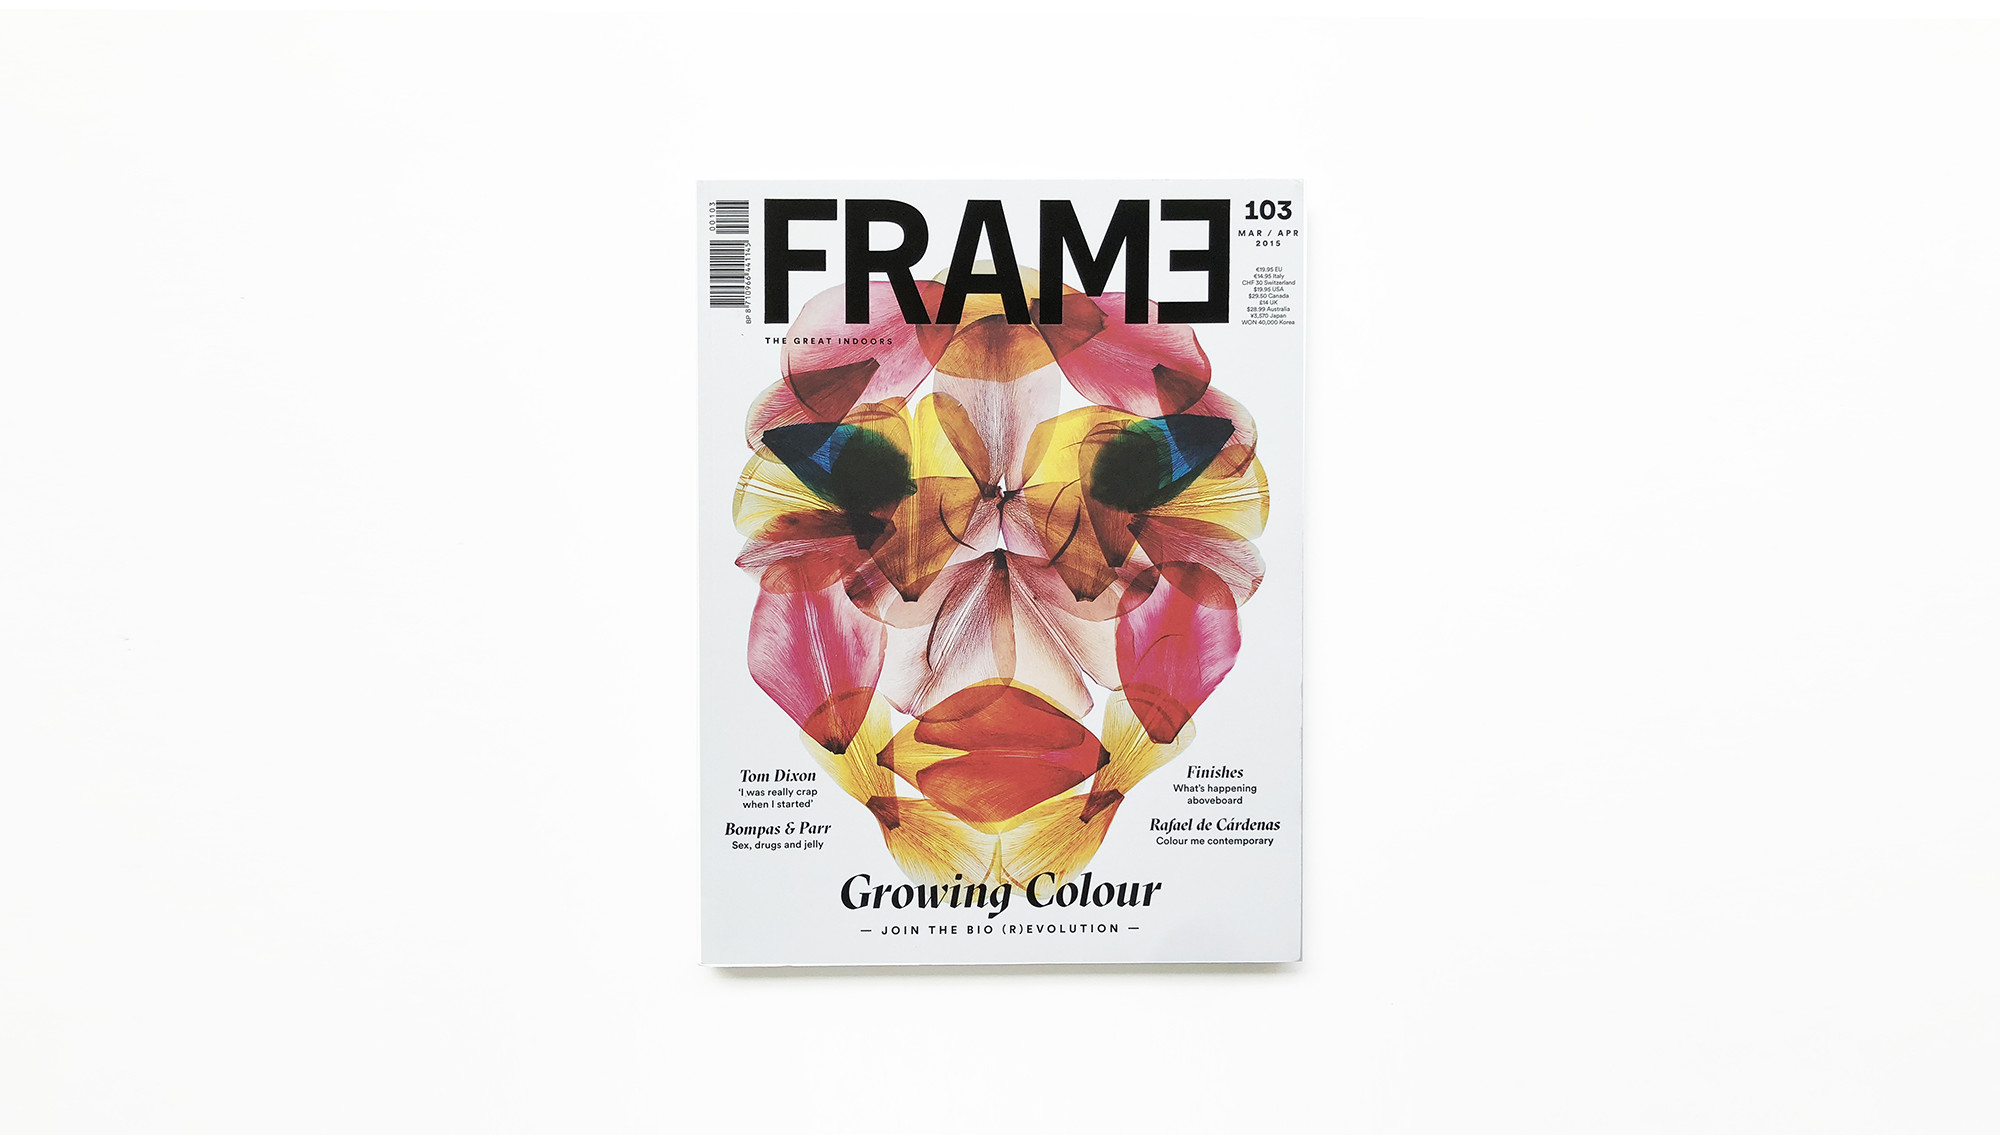 FRAME March / 2015